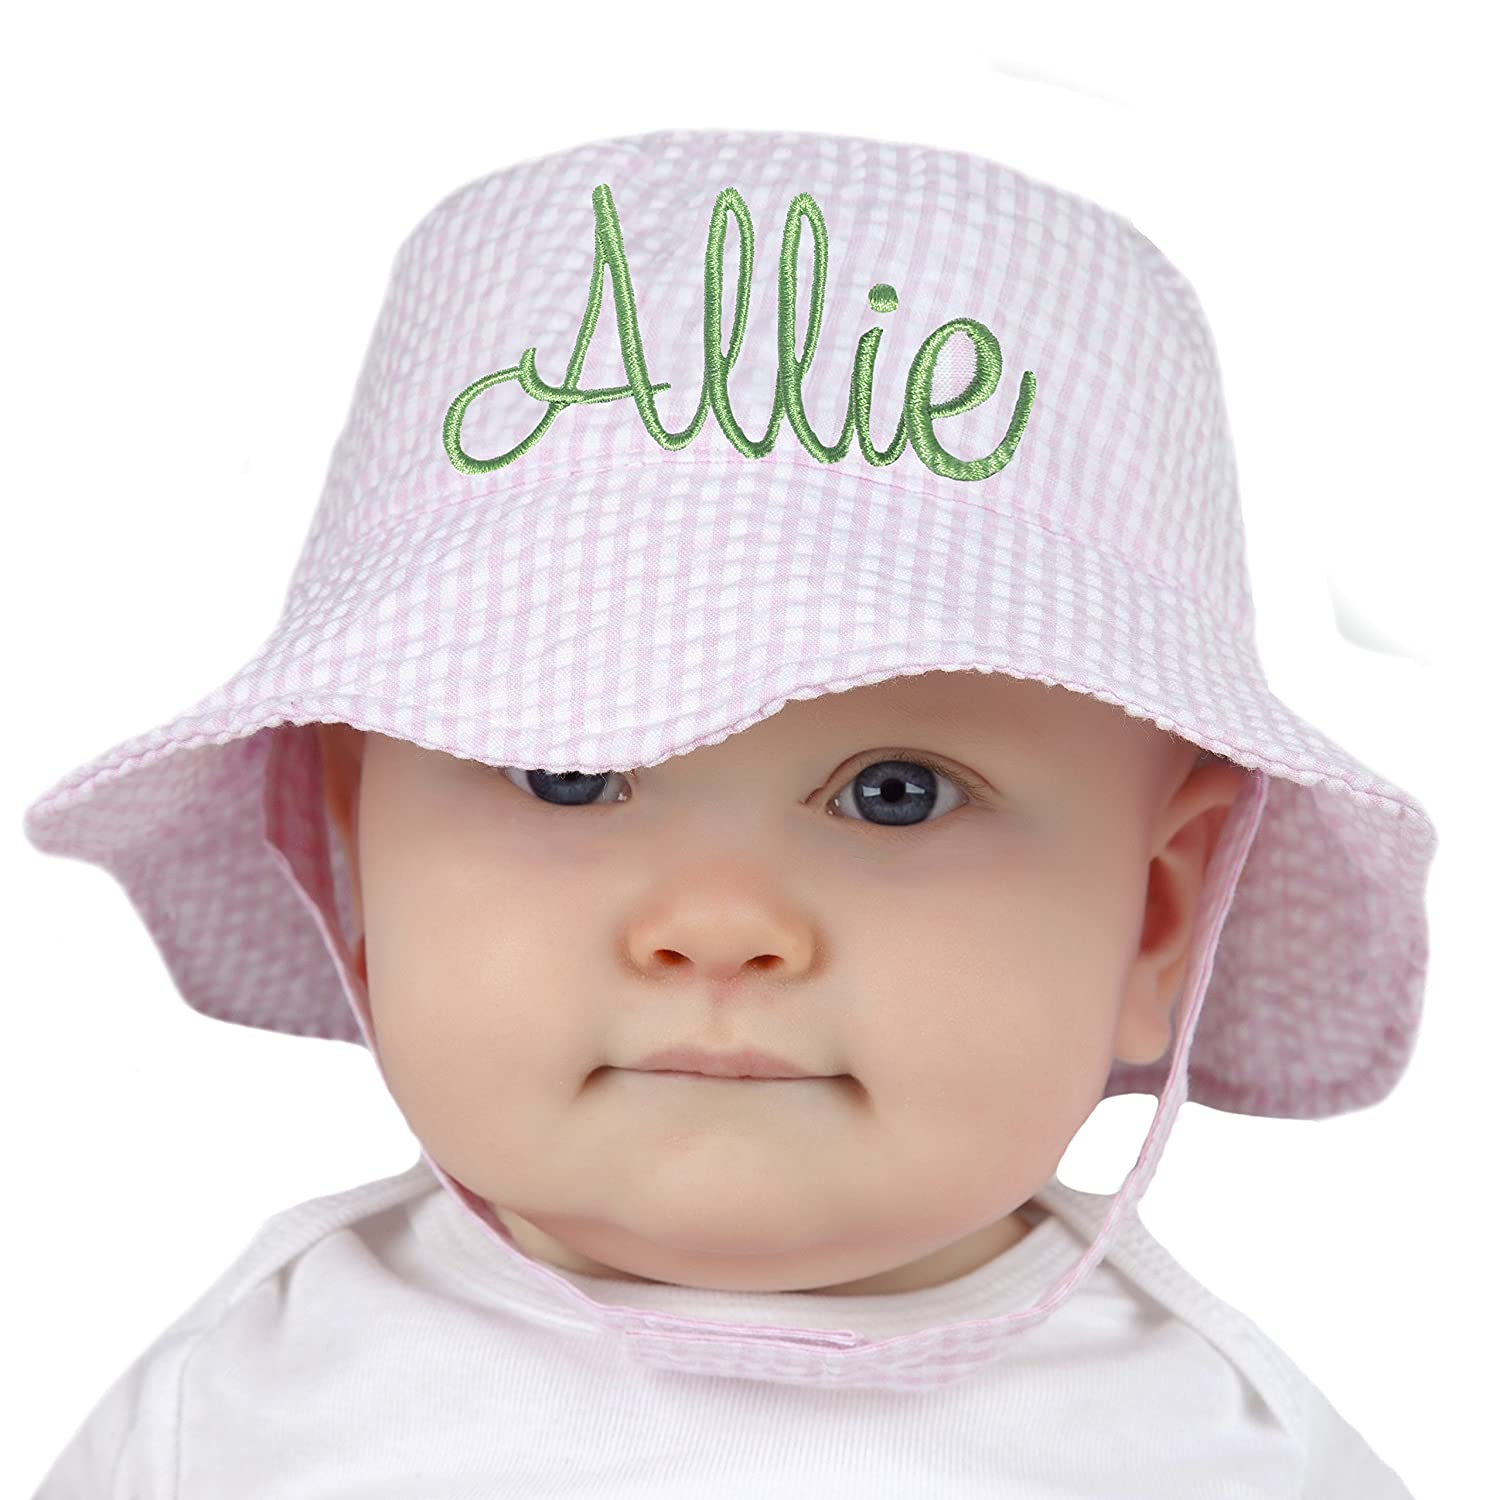 Amazon.com  Melondipity Pink   White Seersucker Personalized Baby Sun Hat   Clothing bddfd6d96f1